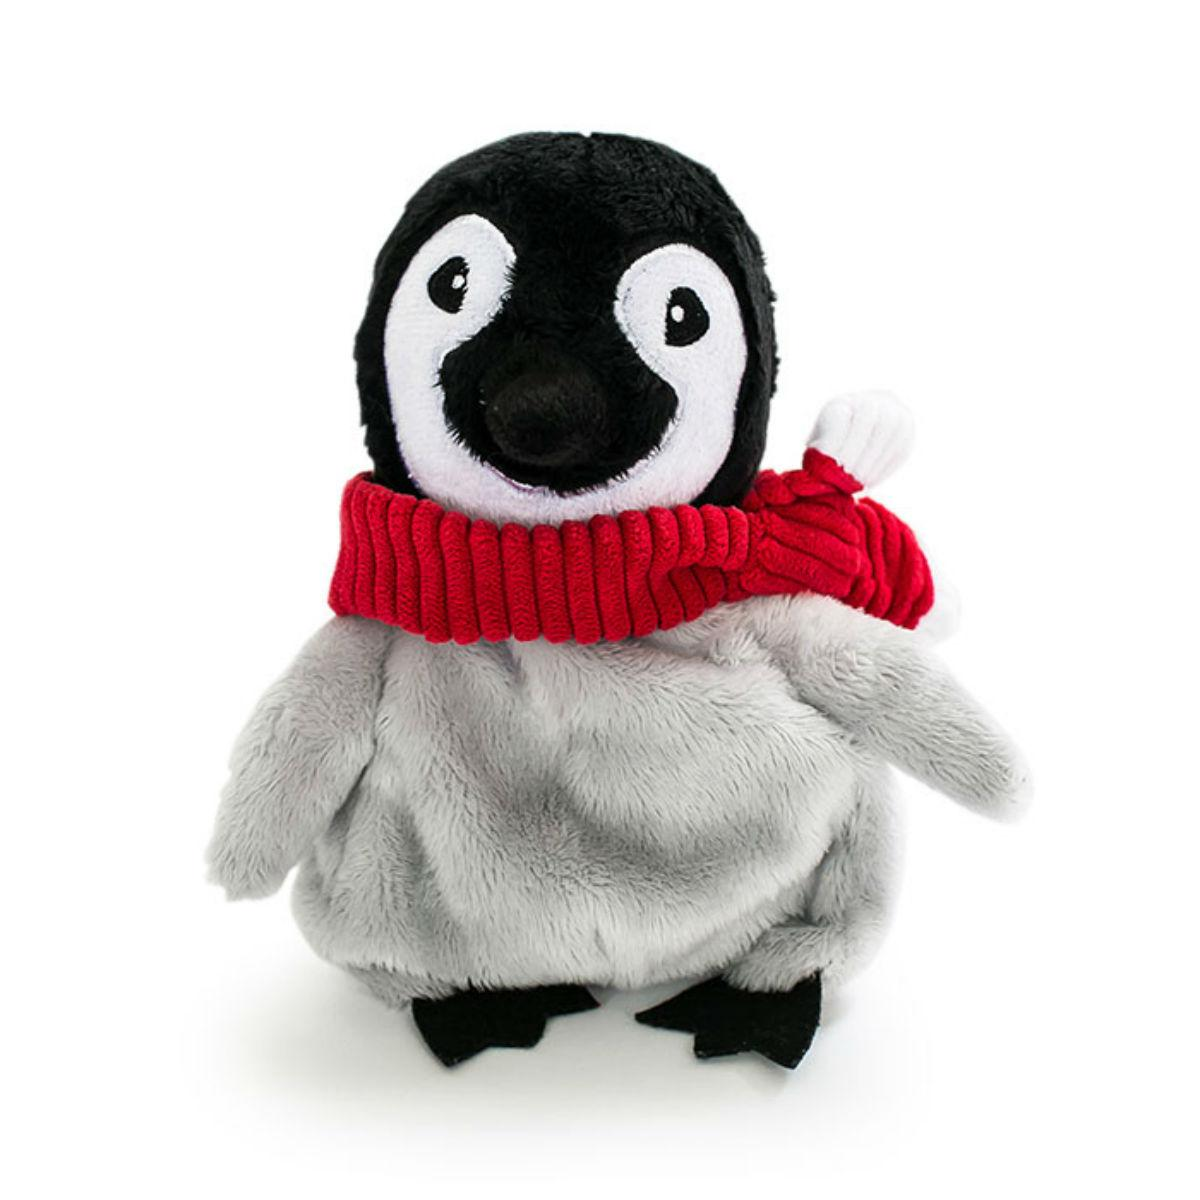 Hatchables X-Mas Dog Toy - Penquin/ Ornament